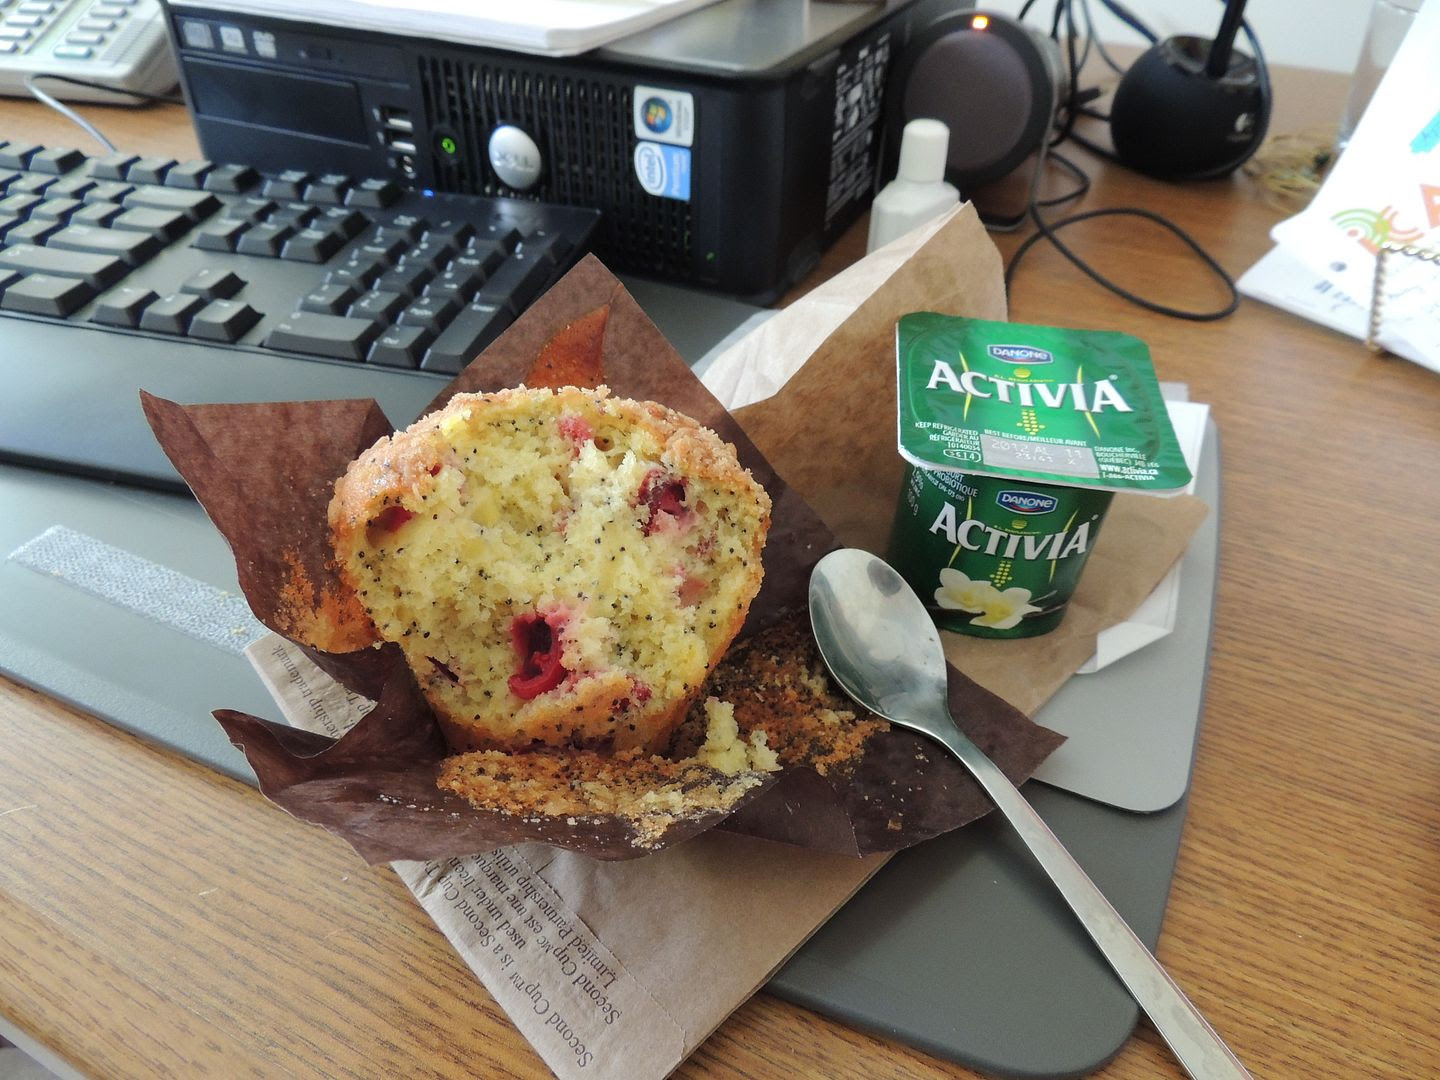 4.19, breakfast at my desk